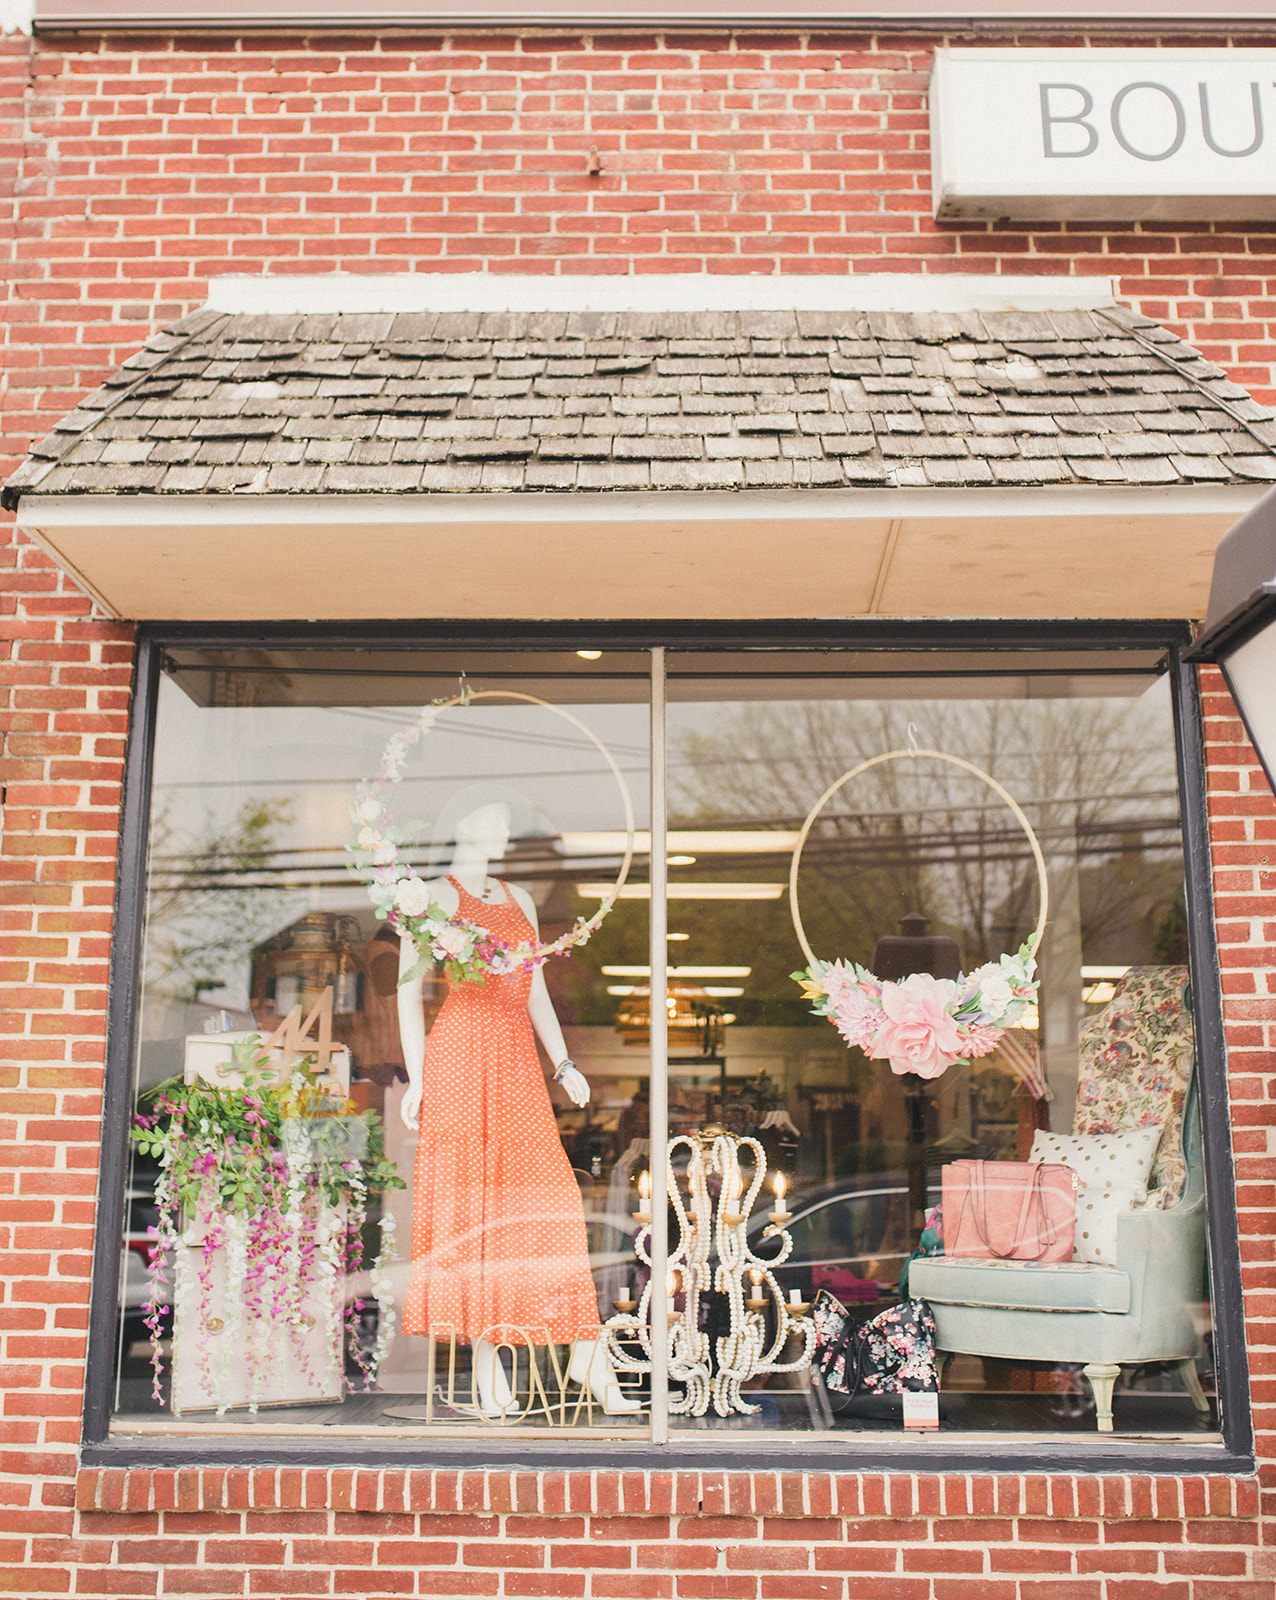 Bel Air Store! - Boutique 44 Bel Air opened on October 13, 2018 at 140A N. Bond Street! I am thrilled to bring my style to my hometown and community. Born and raised in Harford County, I shopped the local boutiques like Tiger Lily and The Pink Silhouette with my mom. It is so exciting to watch my town grow and become part of it in the process.Boutique 44 aims to shake up the online retail scene and offer you the same styling advice and help that we would in person.